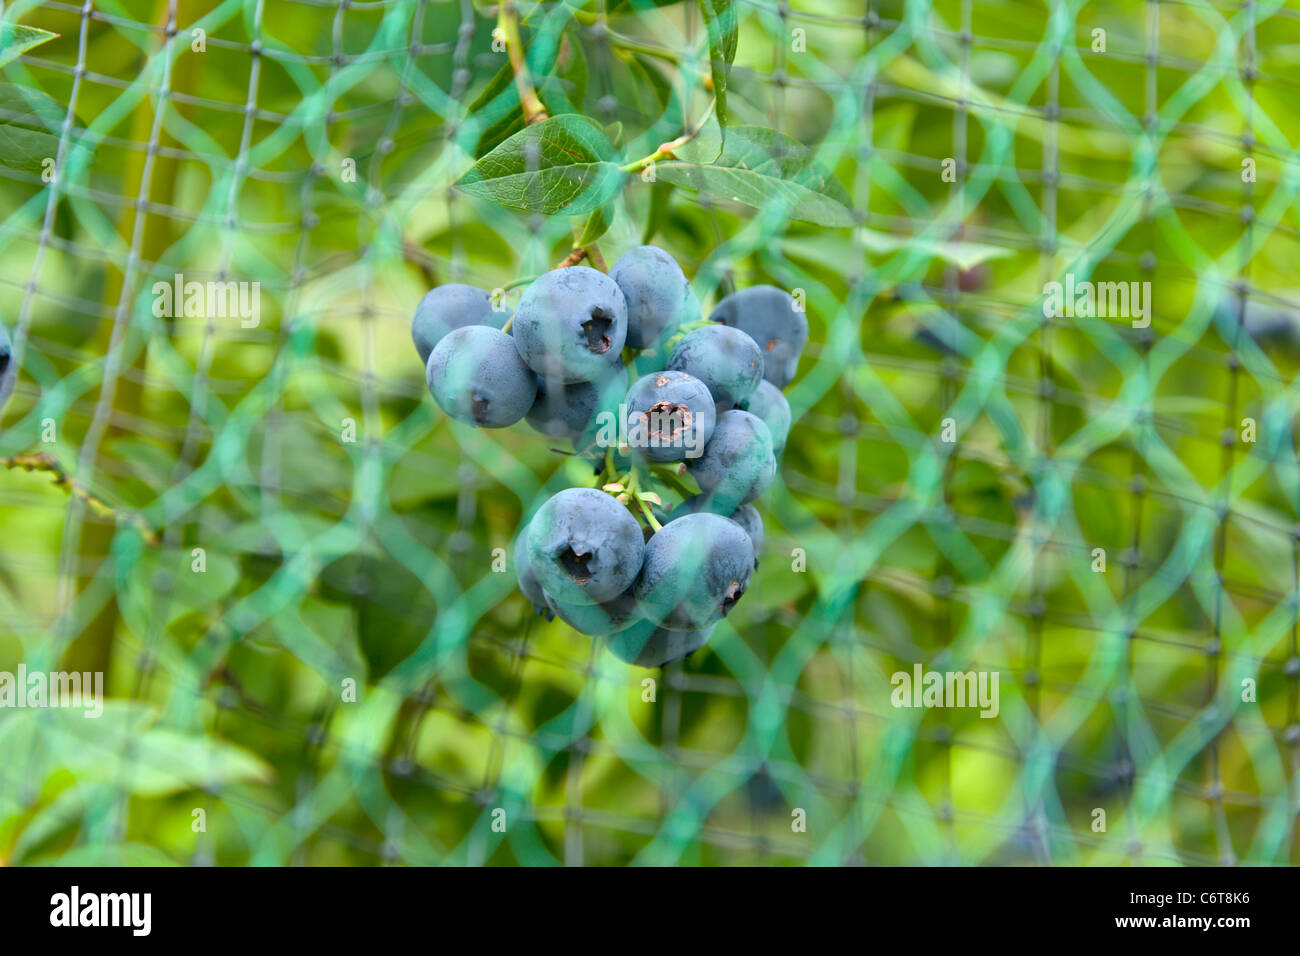 Blueberries being protected from birds by netting - Stock Image